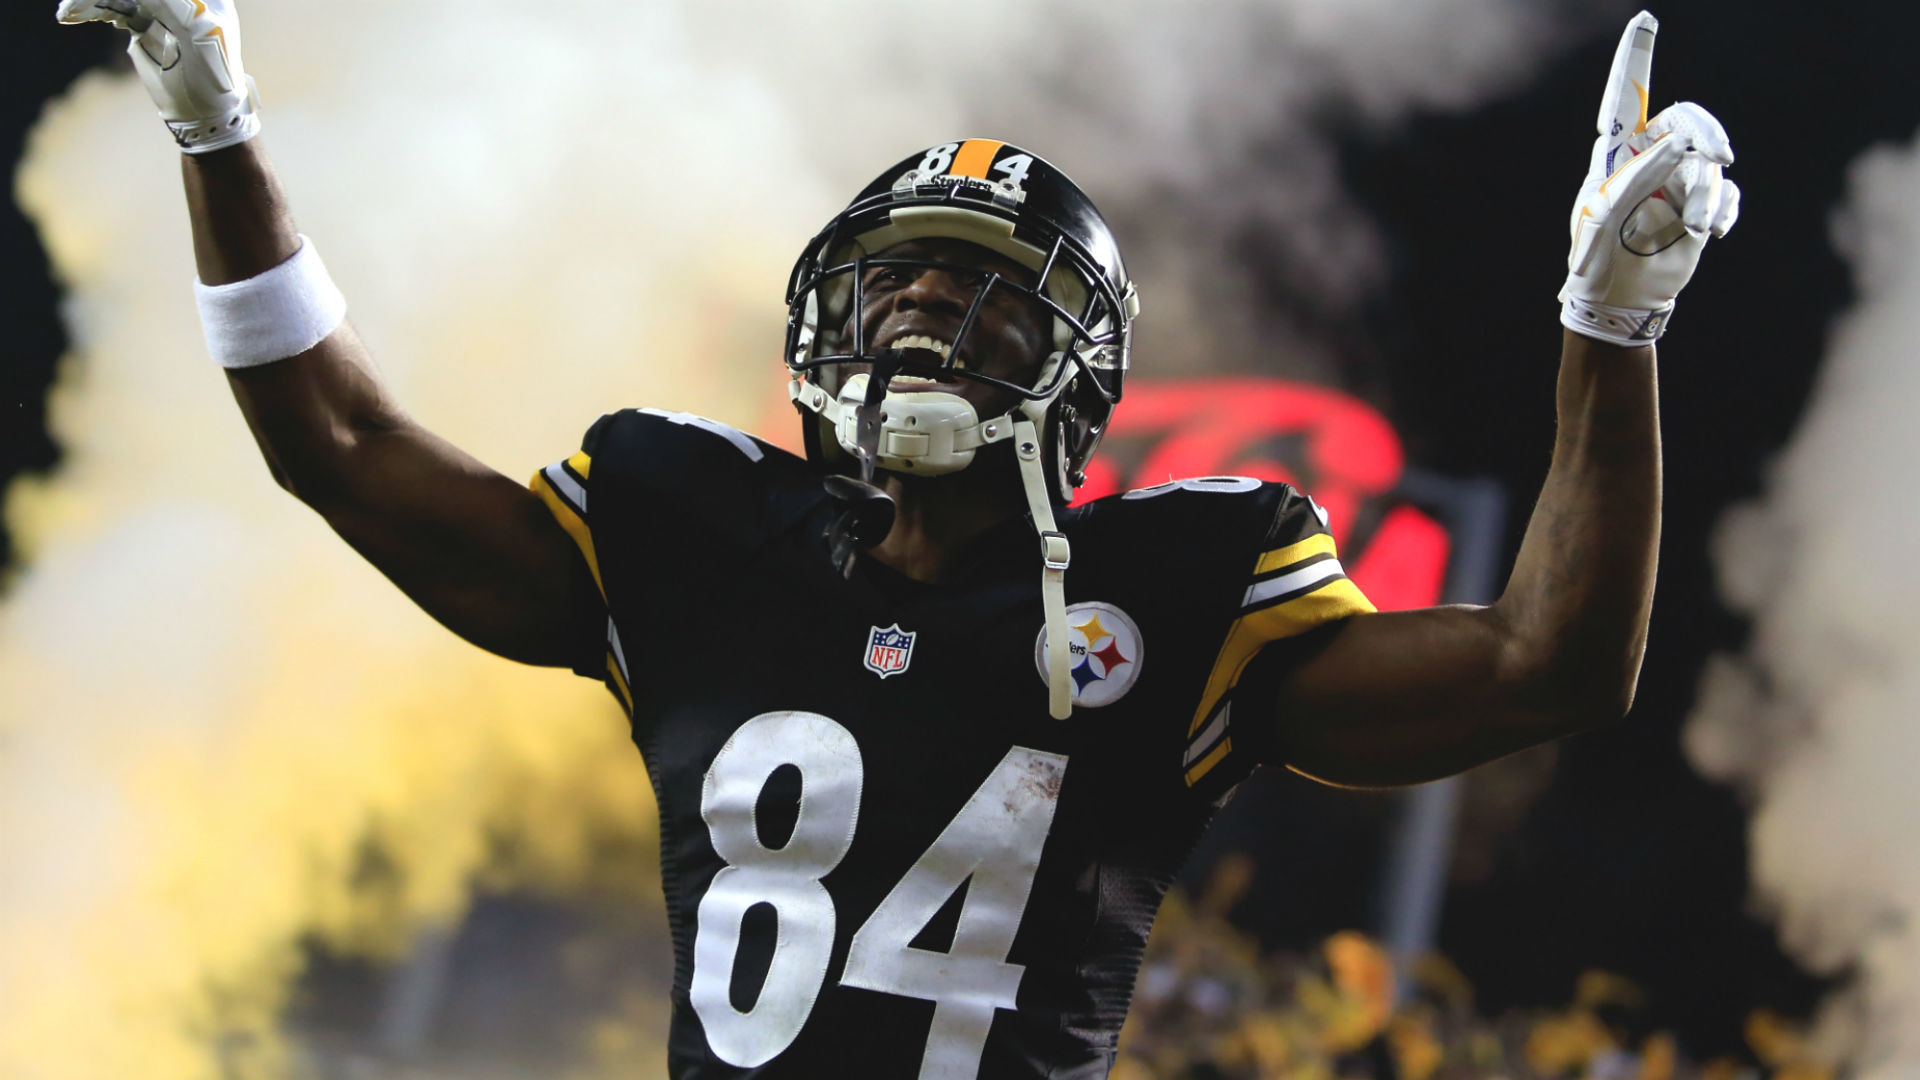 Steelers' Antonio Brown to compete on 'Dancing With The Stars' | NFL |  Sporting News